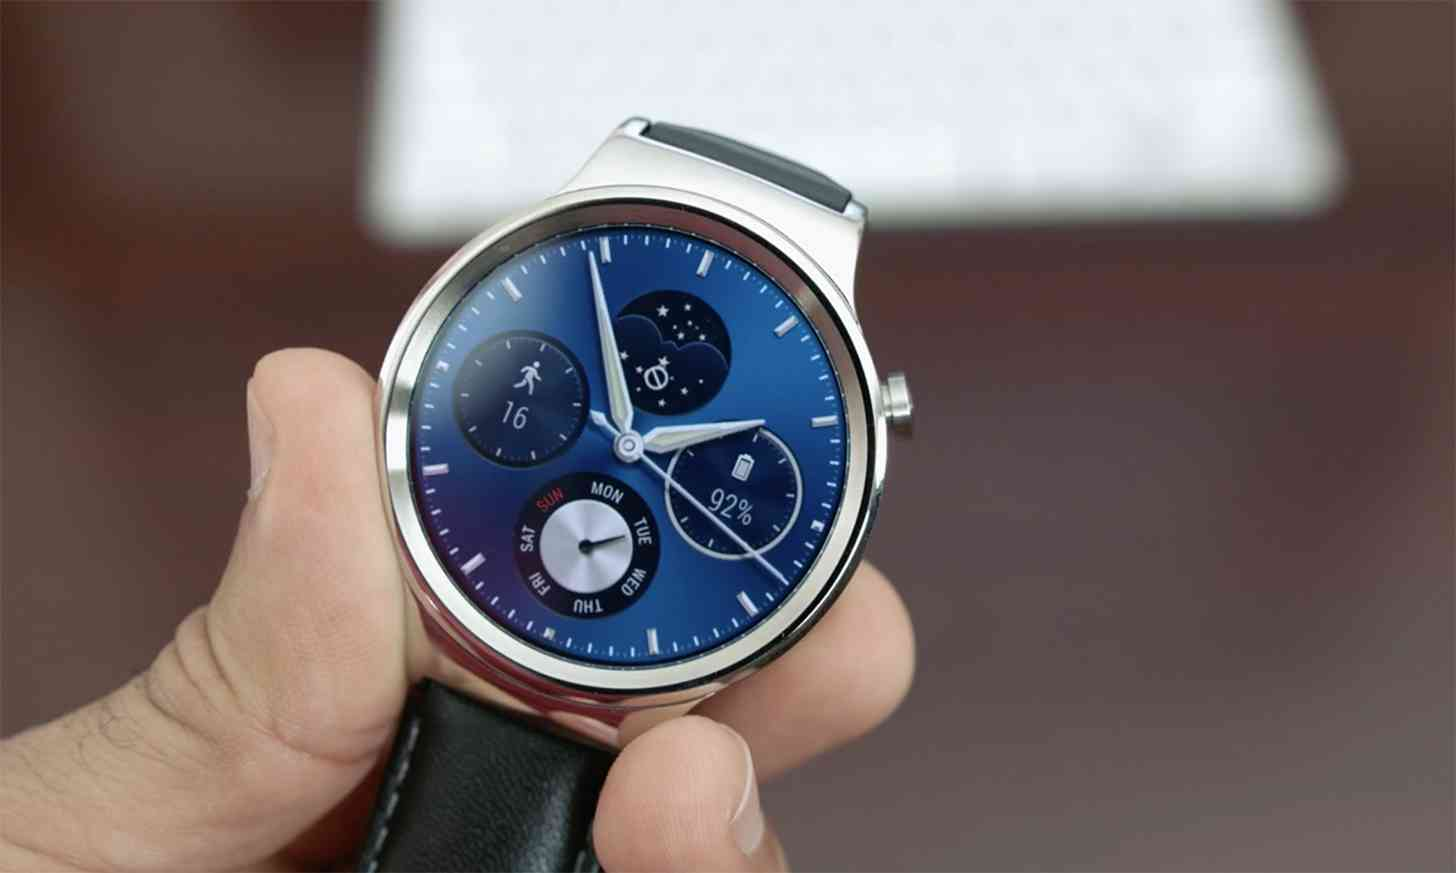 Android Wear huawei watch finally gets update to android wear 2.0